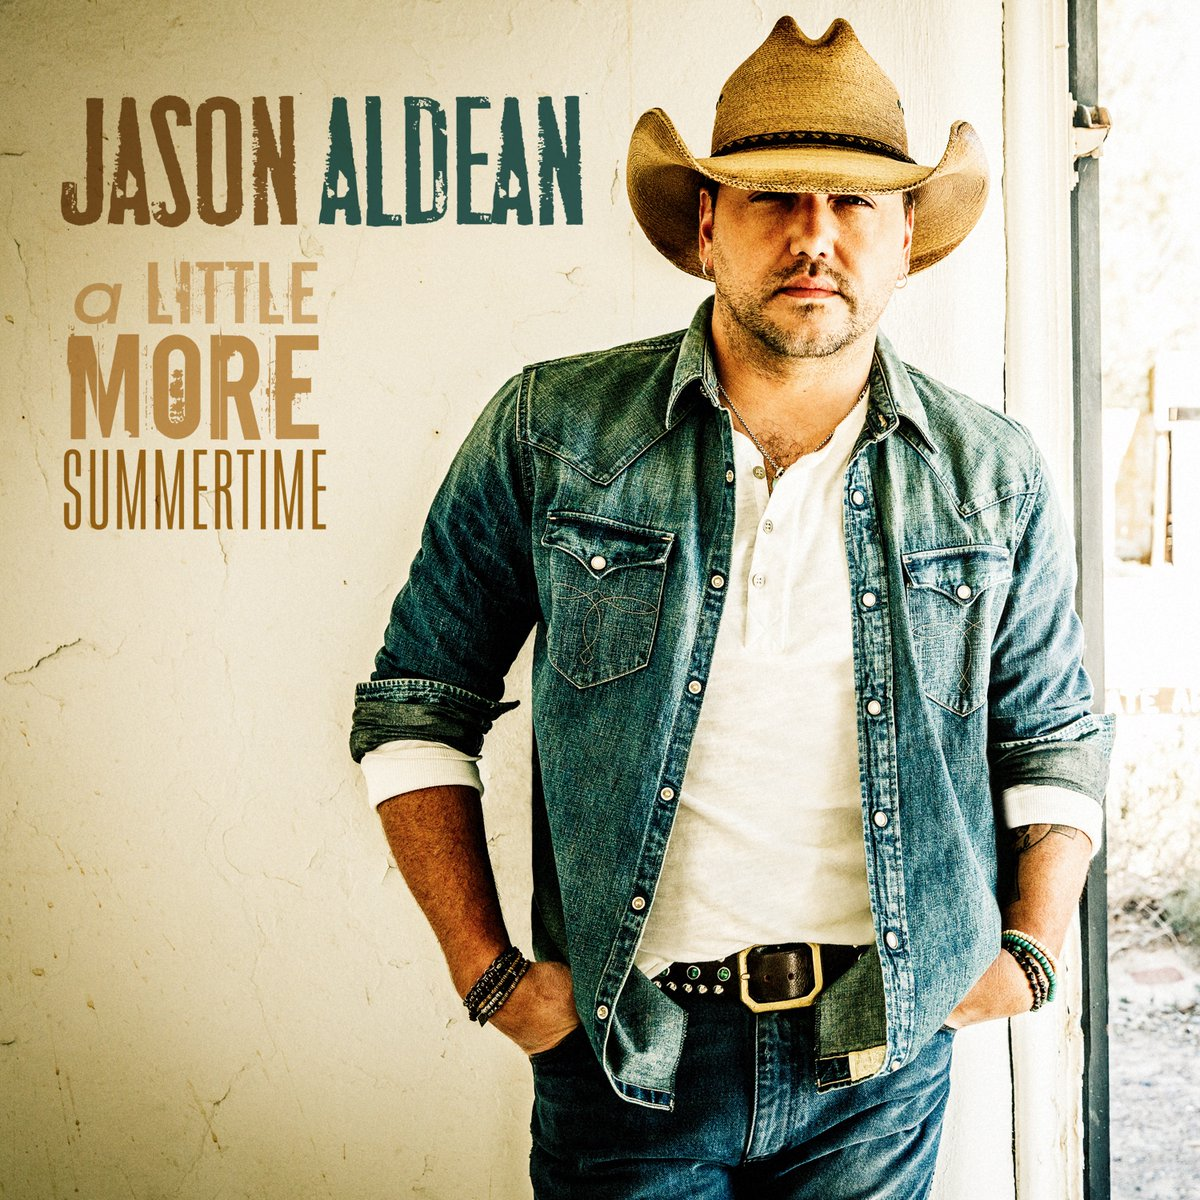 Jason Aldean - A Little More Summertime - Single Cover